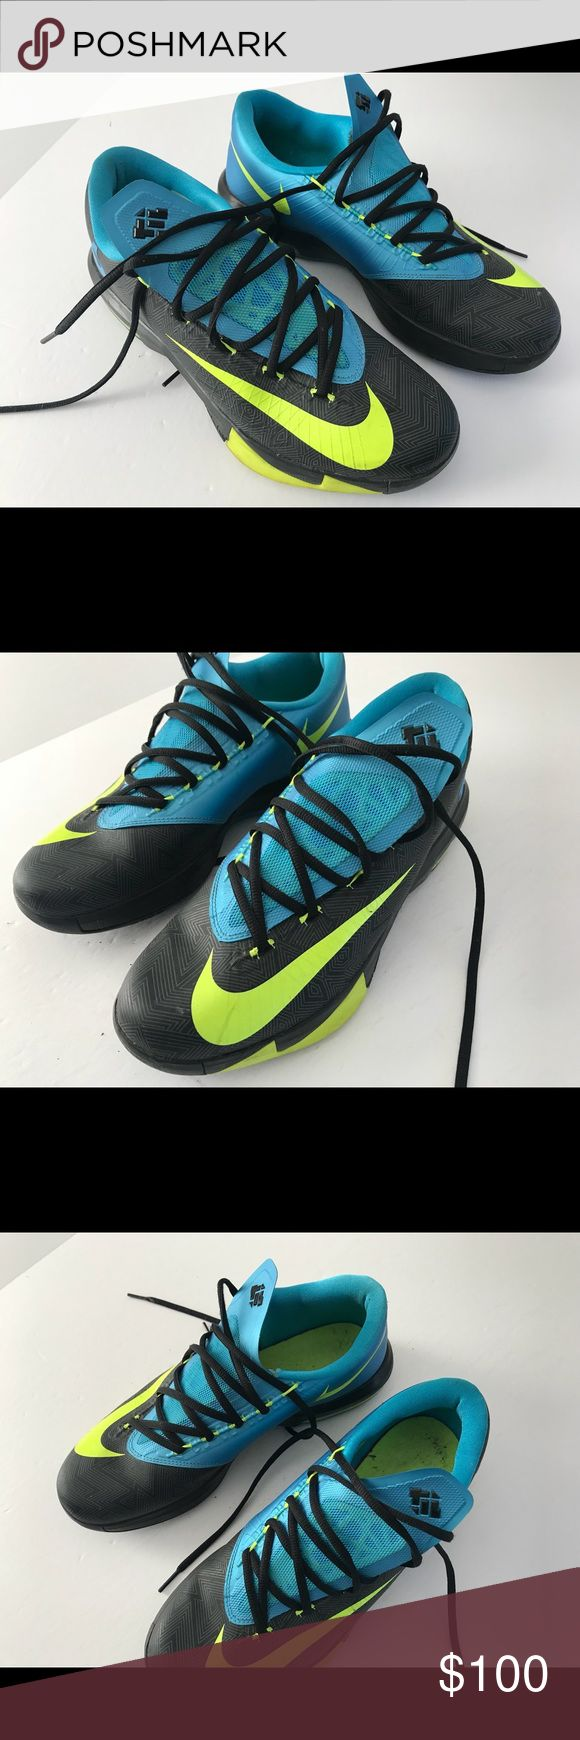 Men's KD Kevin Durant sneakers Men's Kevin Durant sneakers in great condition 8/10. 100% Authentic. Size 9.5. Will ship out next day after purchase. Delivery time 1-3 days. Shop with confidence. 100% Satisfaction Guaranteed. Shoes Athletic Shoes